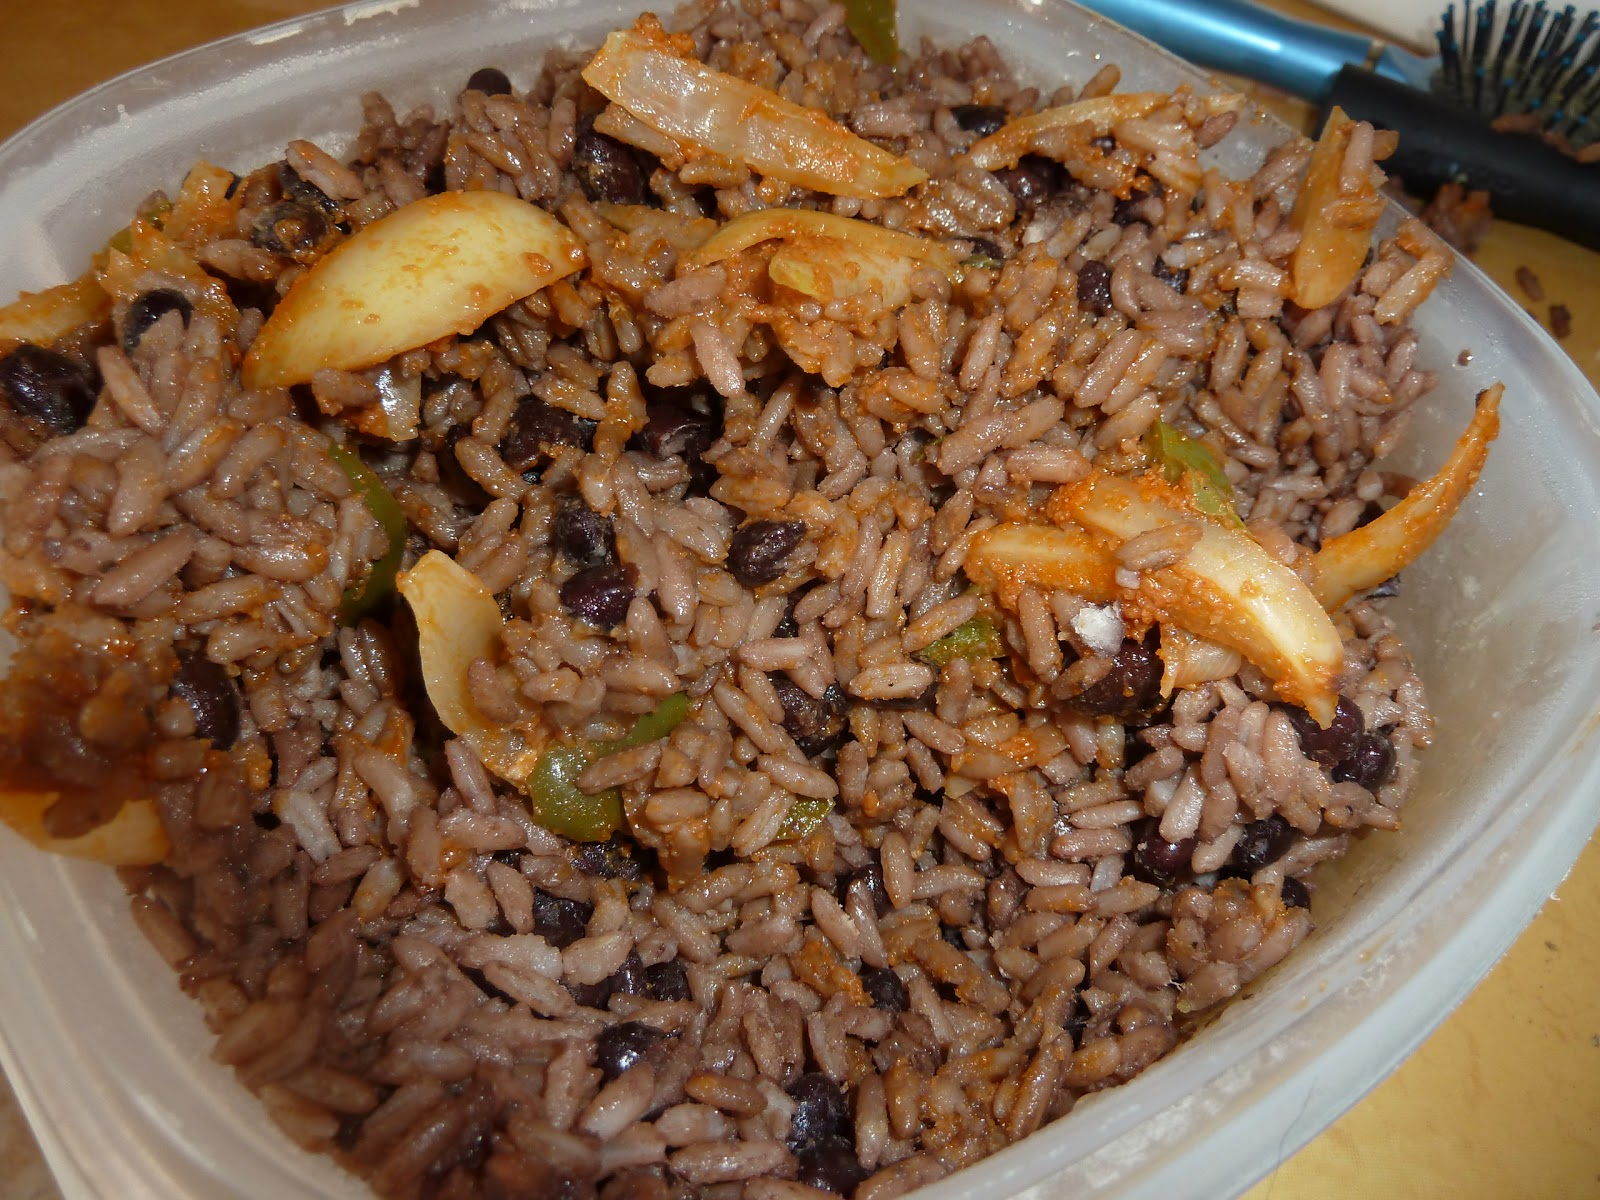 henwoods in haiti haitian food